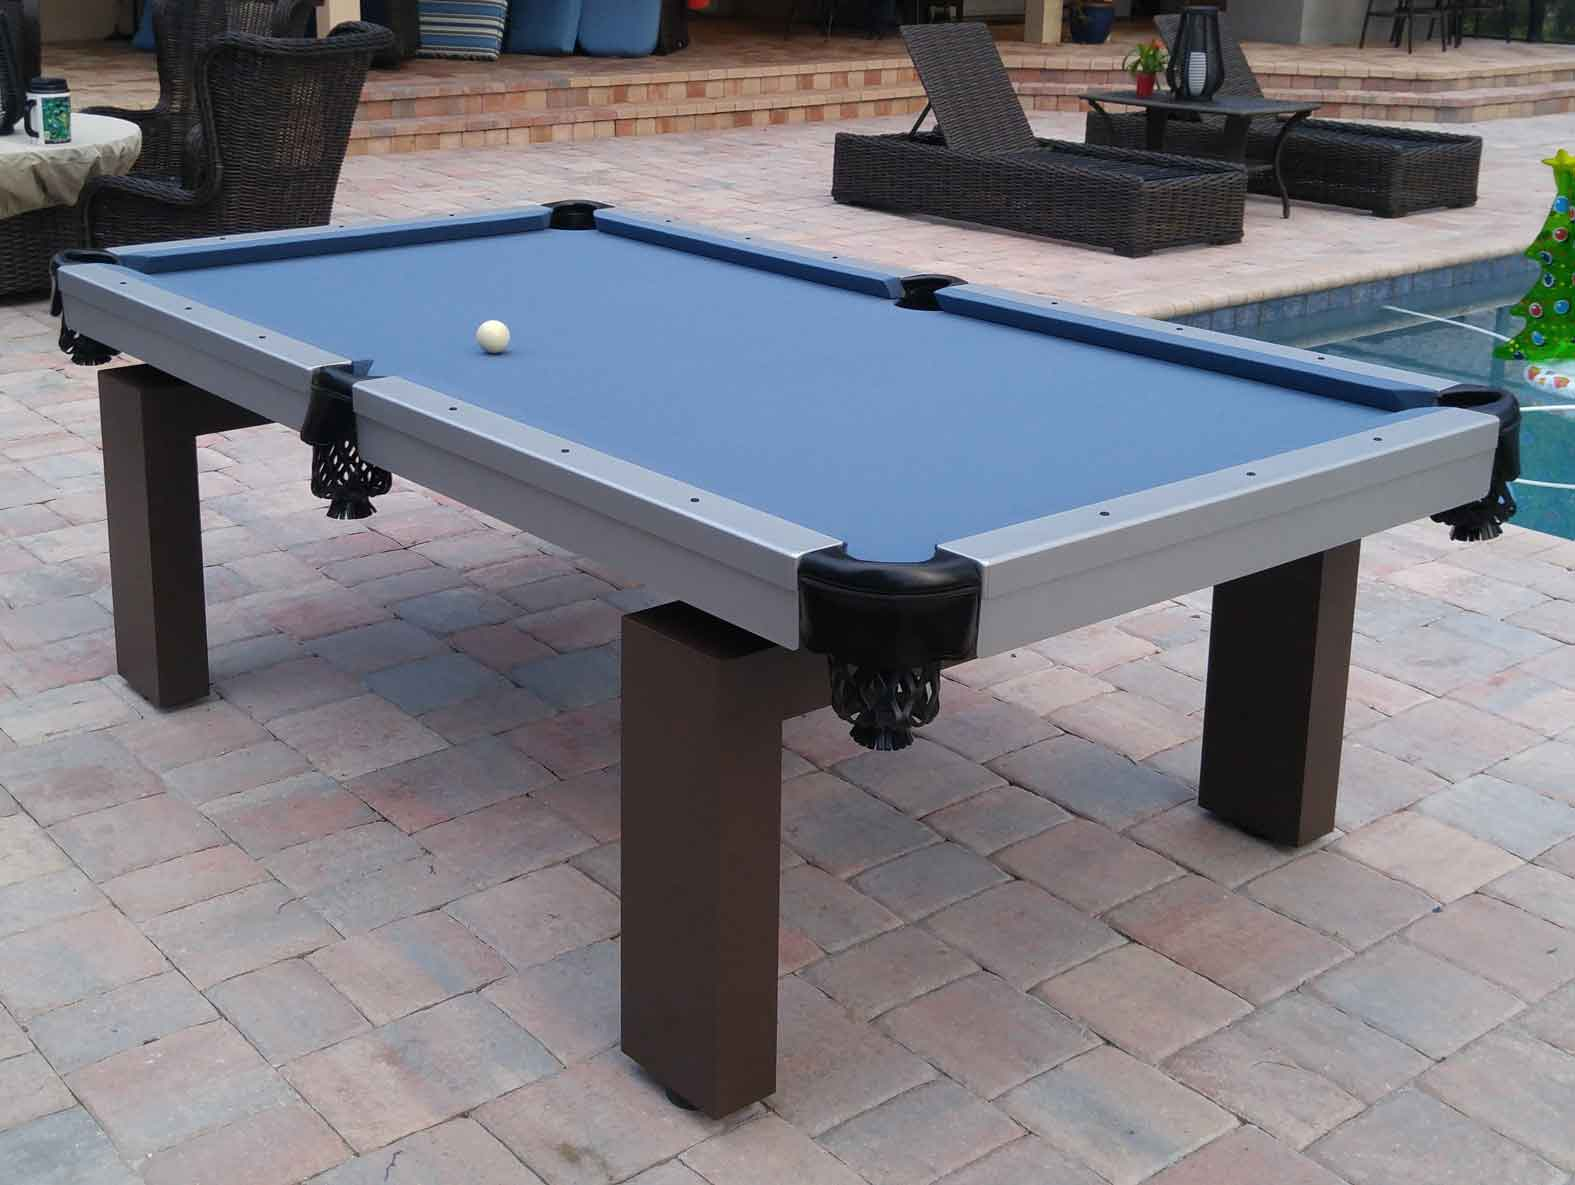 Oasis custom outdoor pool table sitting poolside in Southwest Florida home